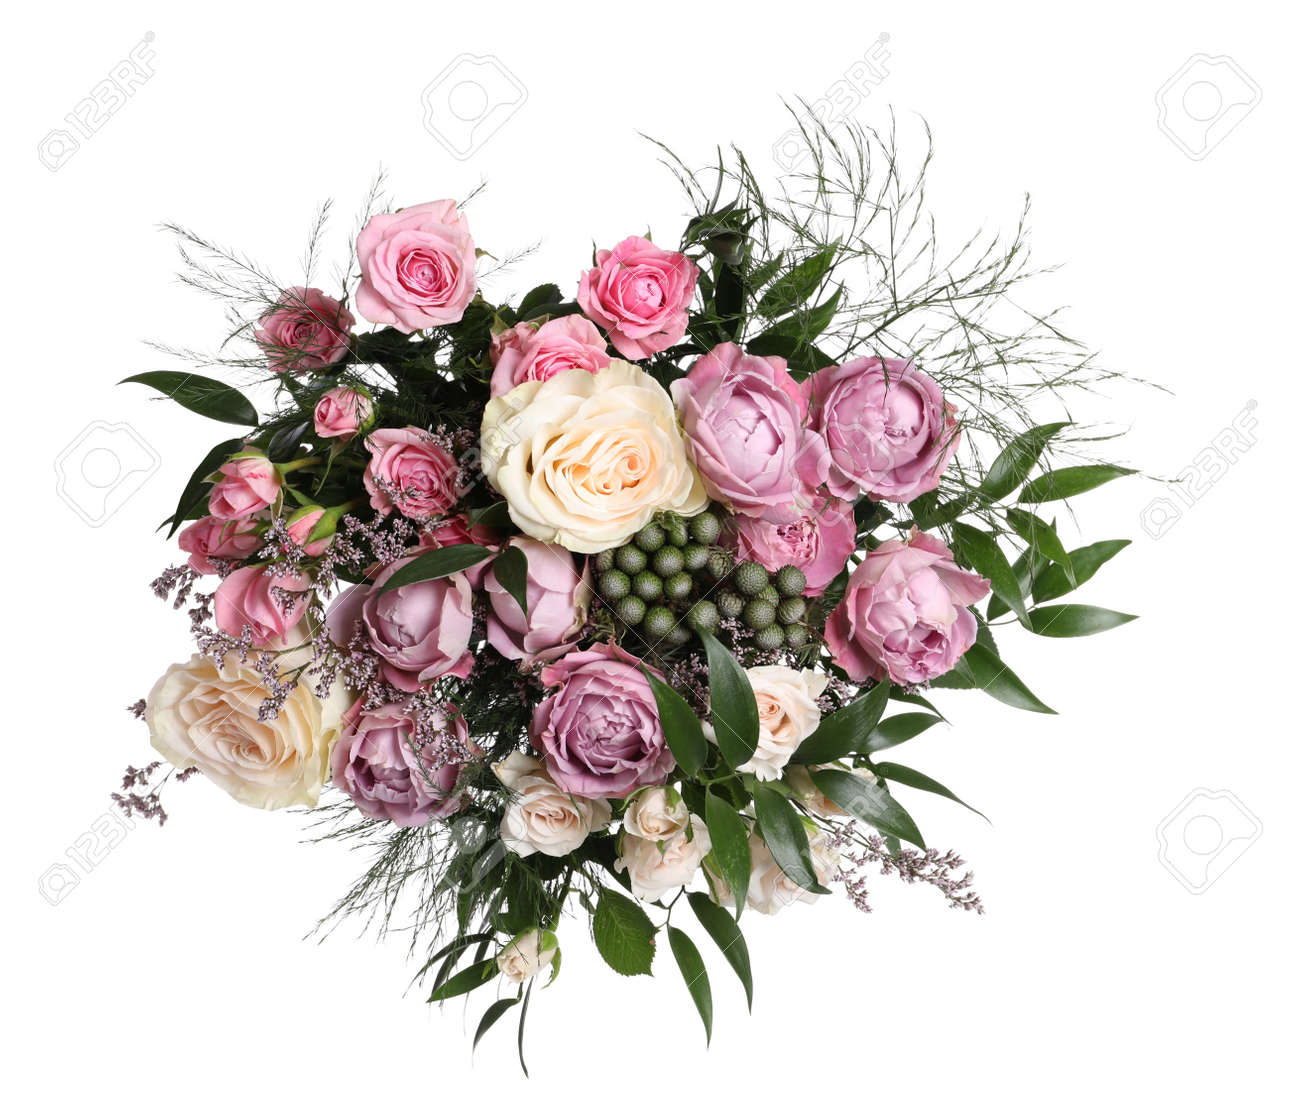 Beautiful bouquet with roses isolated on white - 167345012